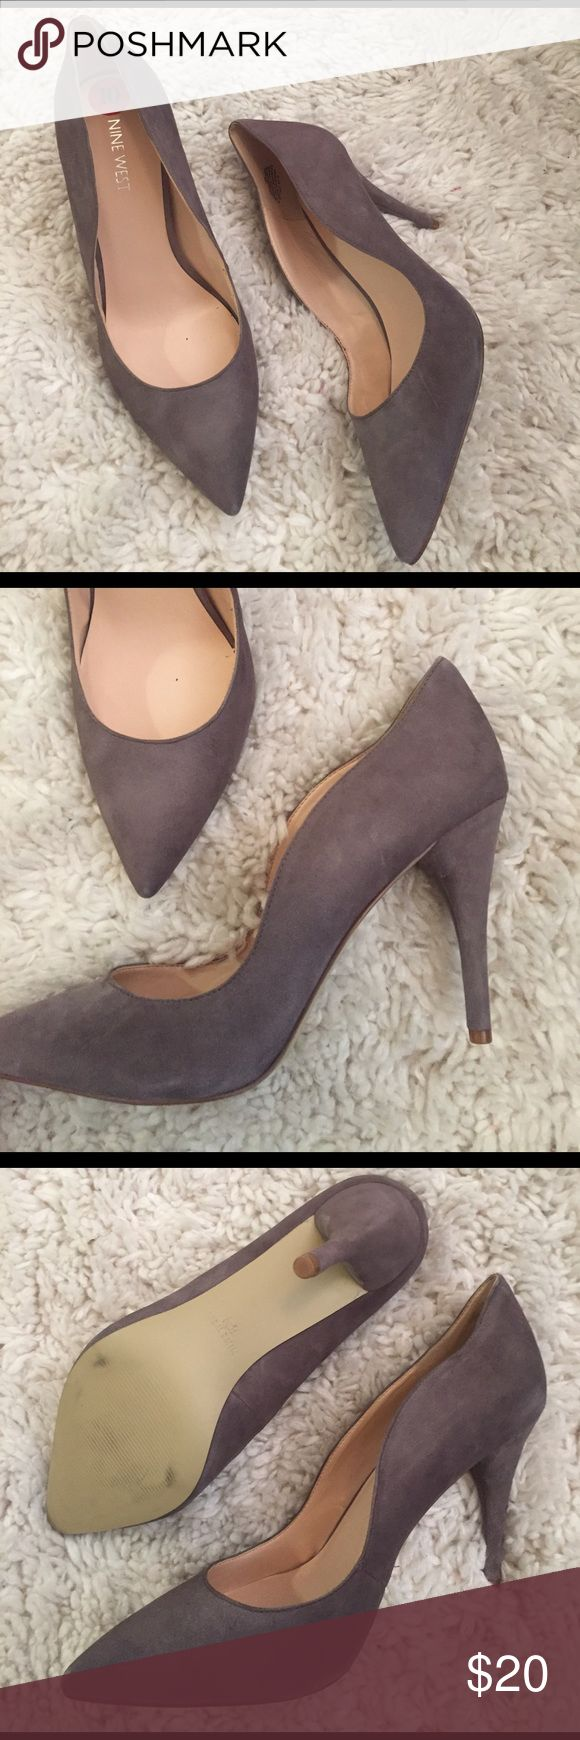 Nine West size 10 soft heels Nine West brand. Size 10. Worn once, perfect condition. Nine West Shoes Heels